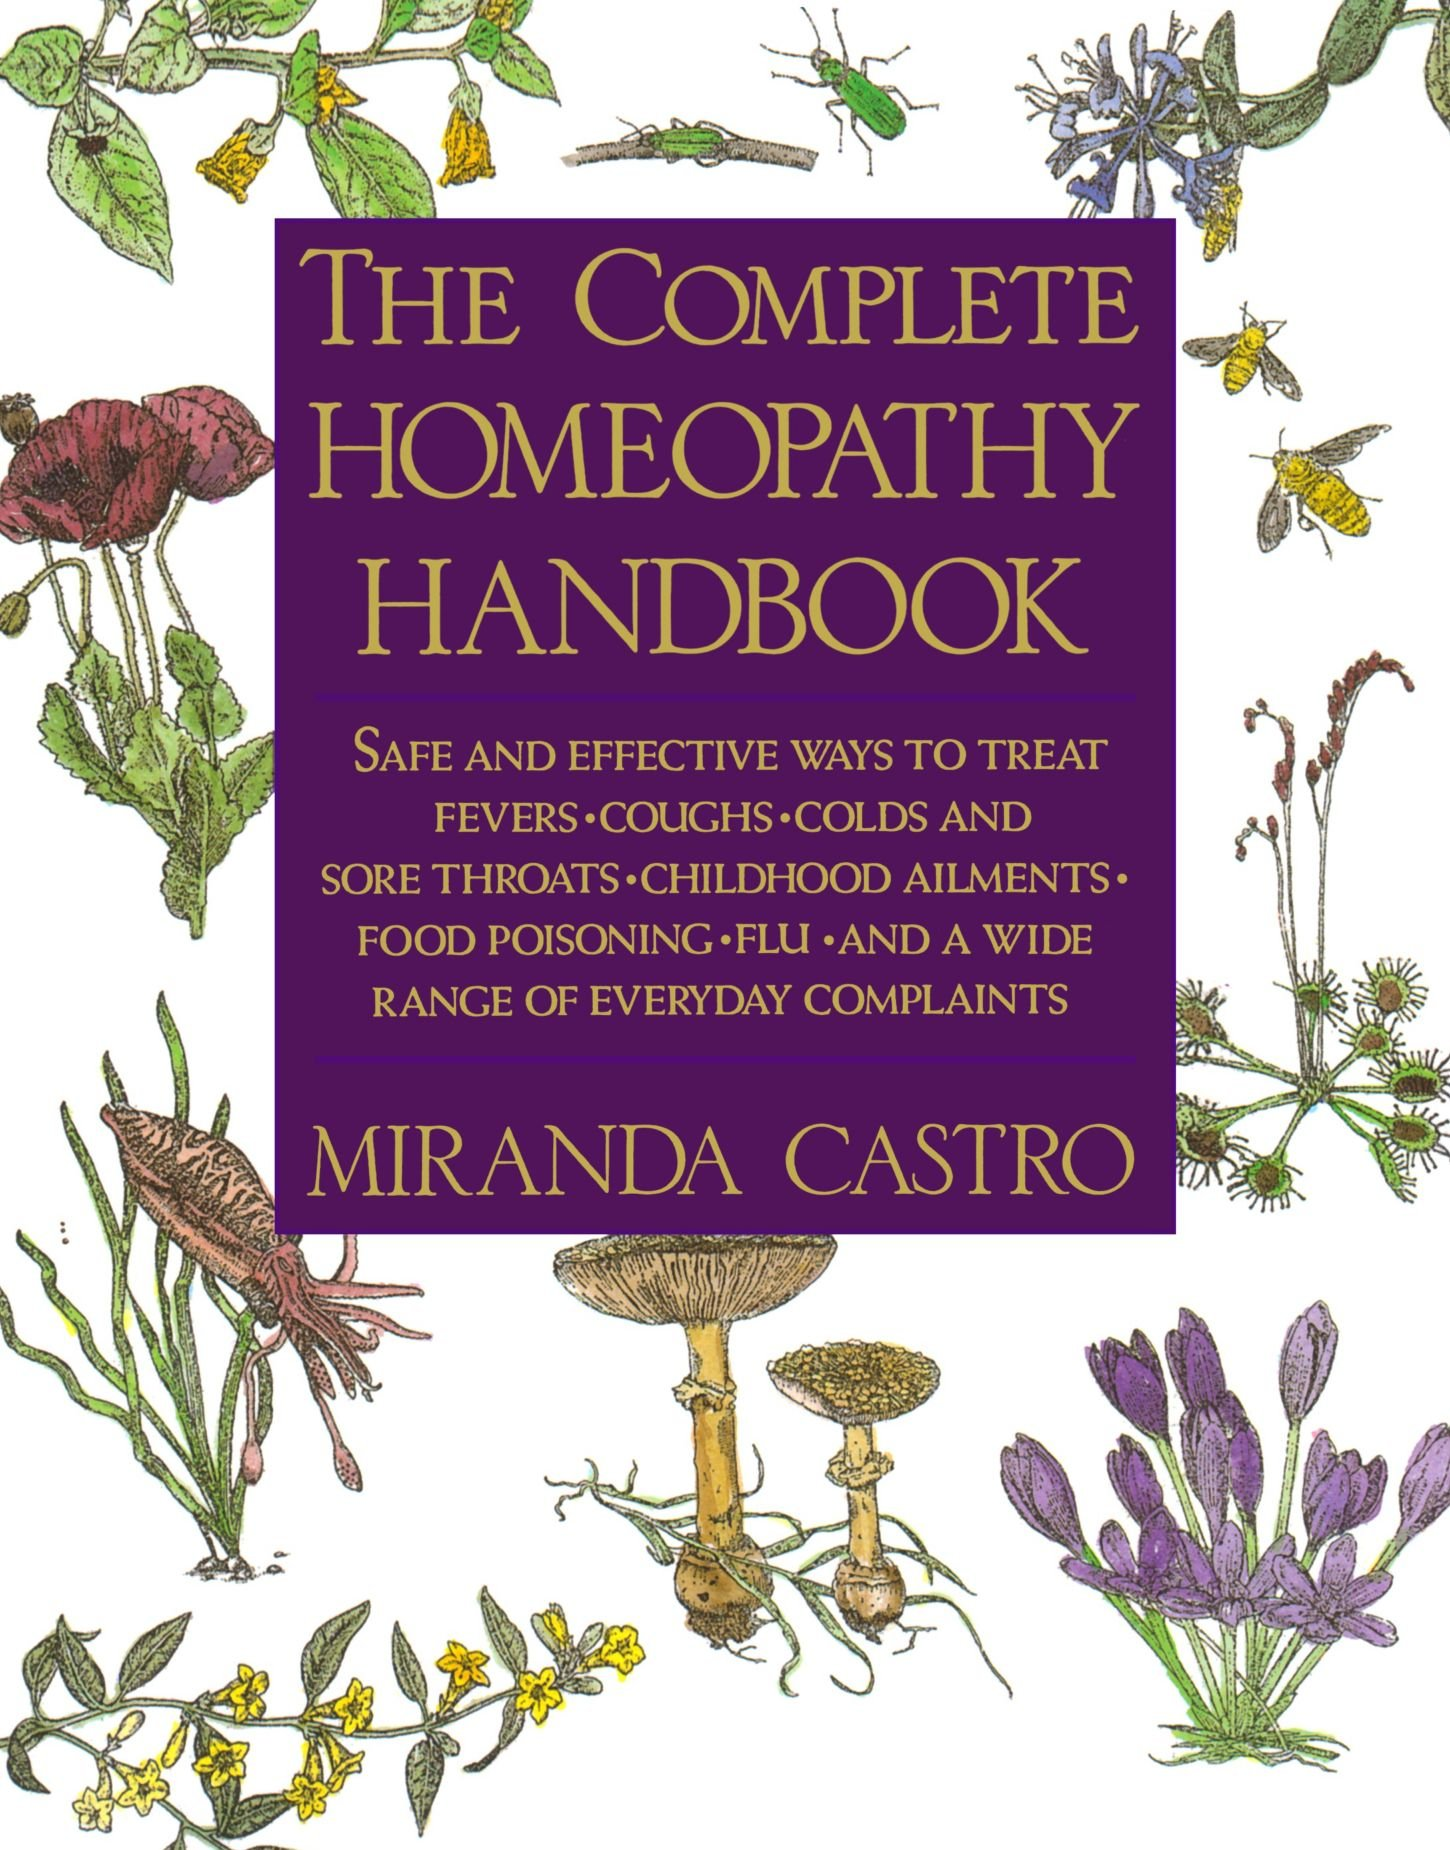 The Complete Homeopathy Handbook  Safe And Effective Ways To Treat Fevers Coughs Colds And Sore Throats Childhood Ailments Food Poisoning Flu An